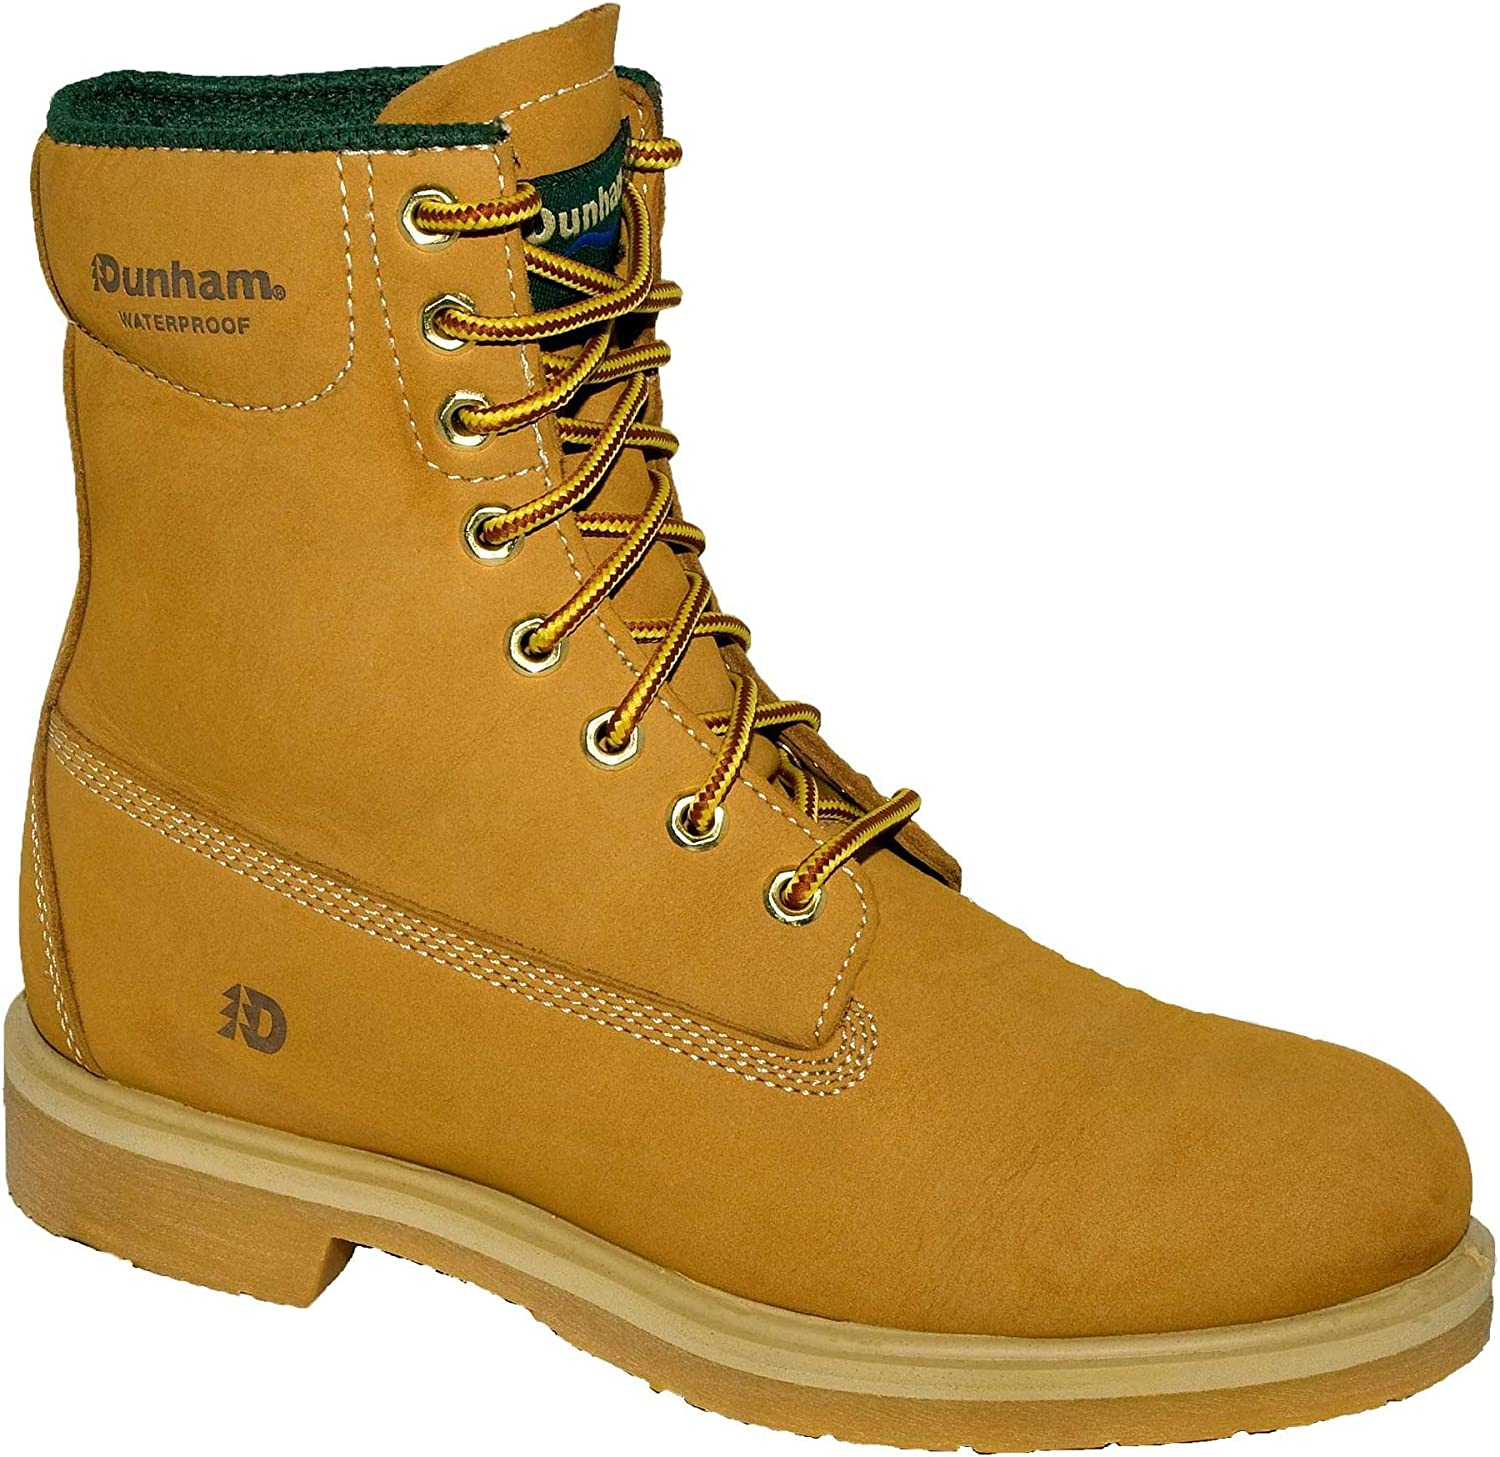 Dunham Mens Work Boots Insulated Style